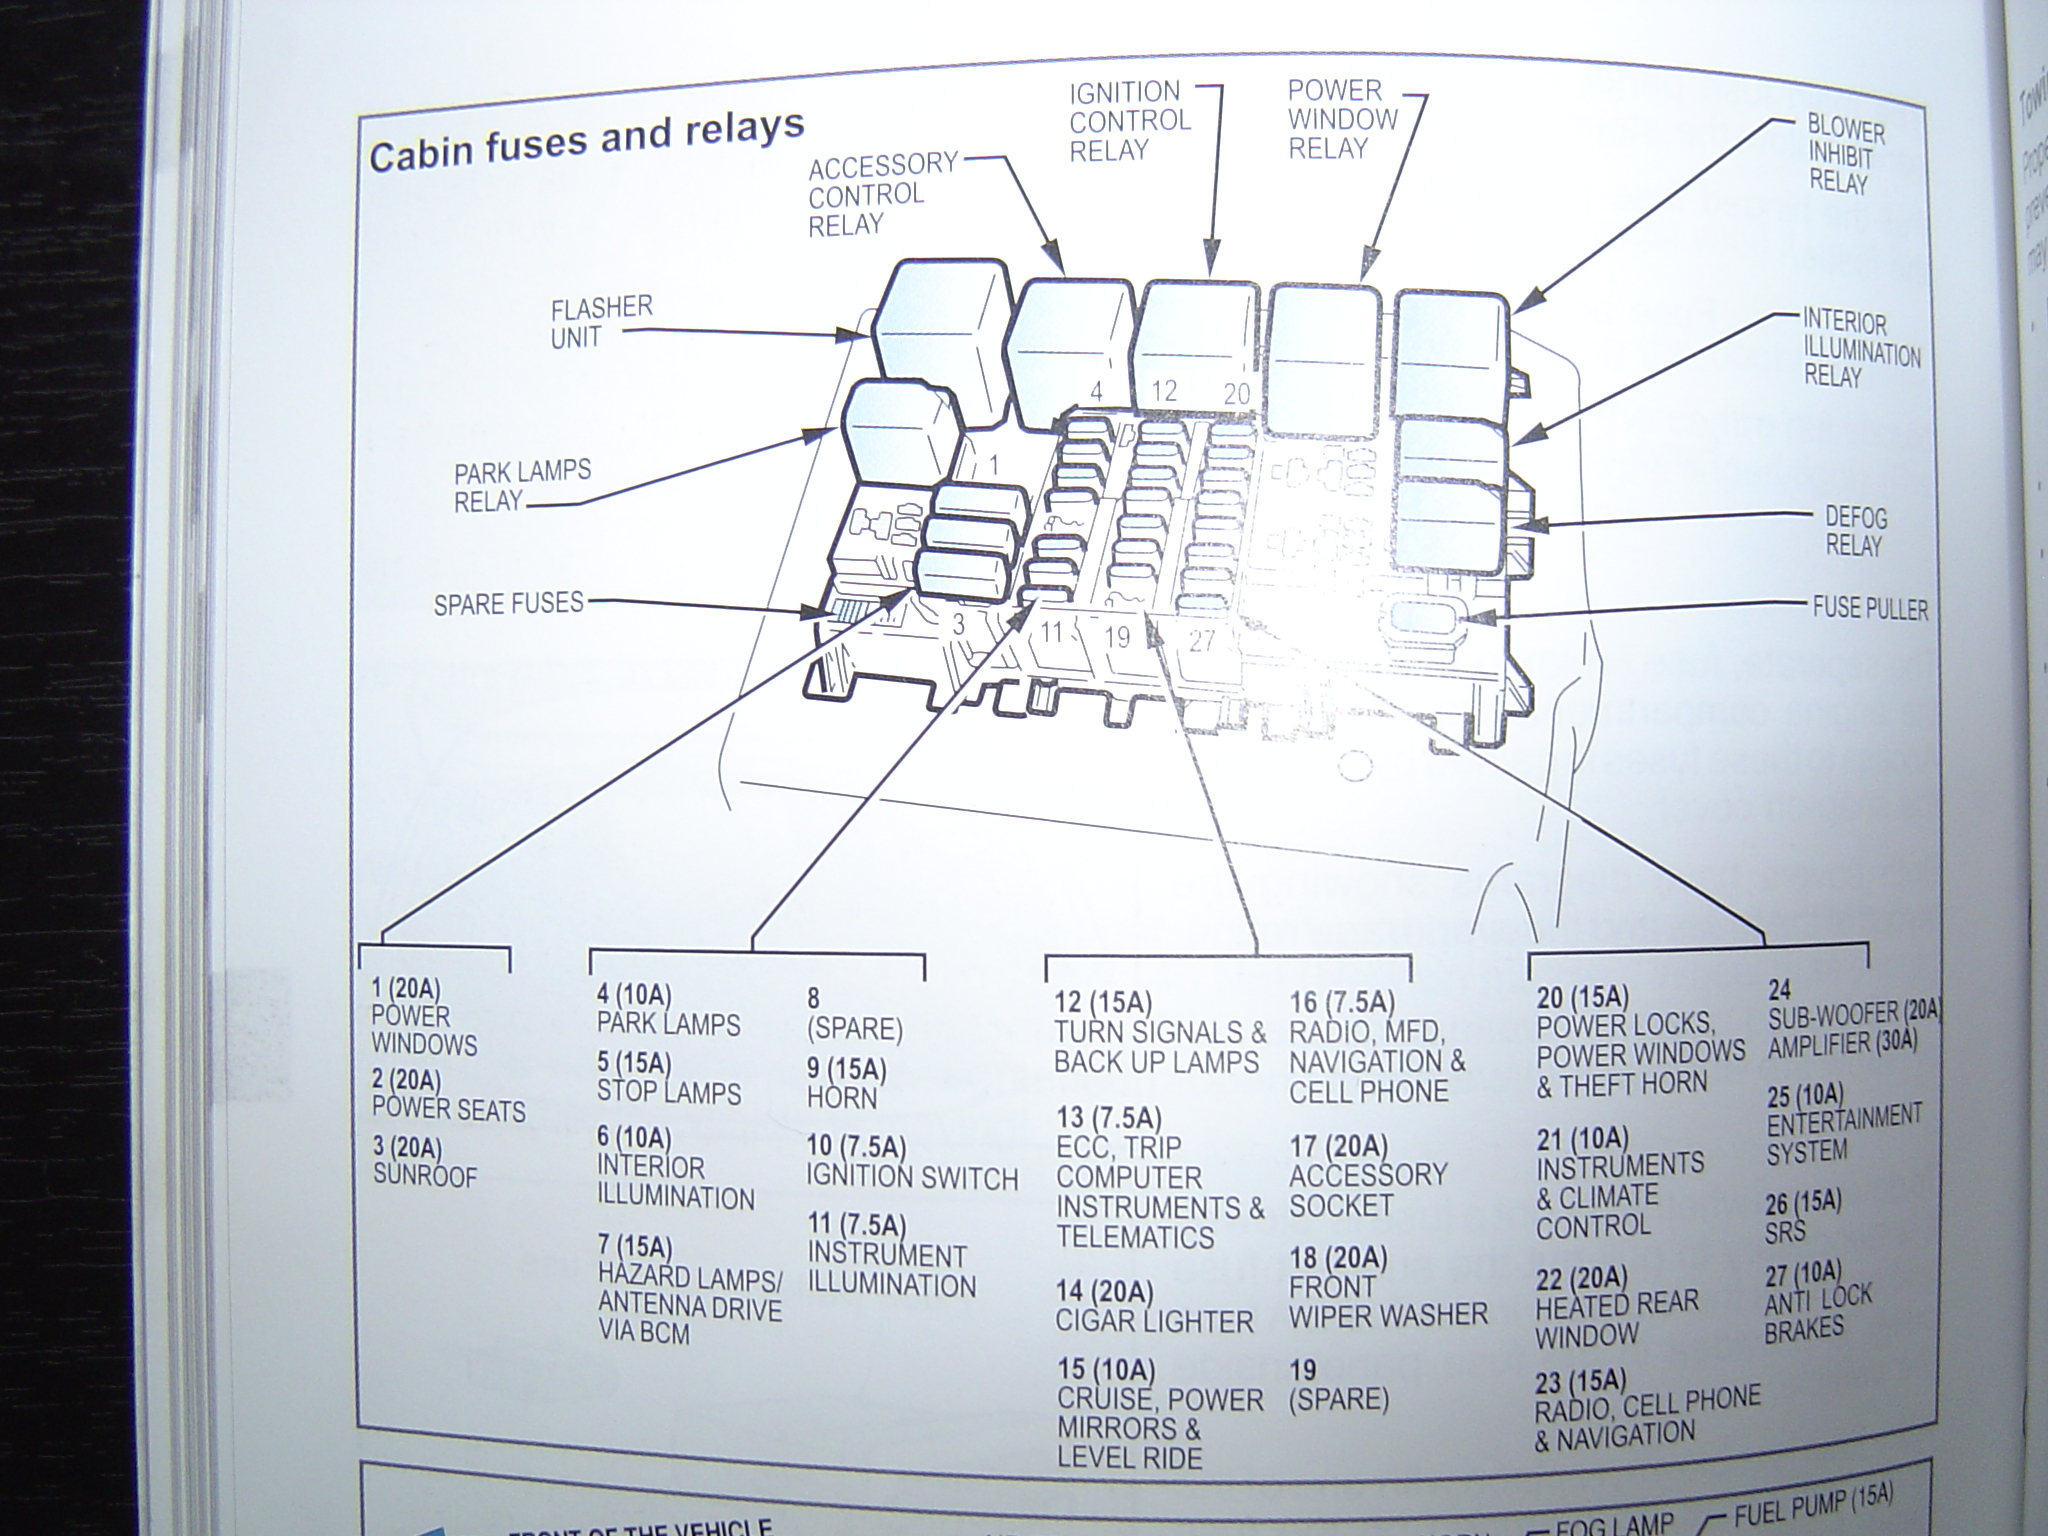 VY_CABIN_FUSEBOX cabin fuse box diagrams ba bf vx vy vz ve 2001 au falcon fuse box diagram at gsmx.co